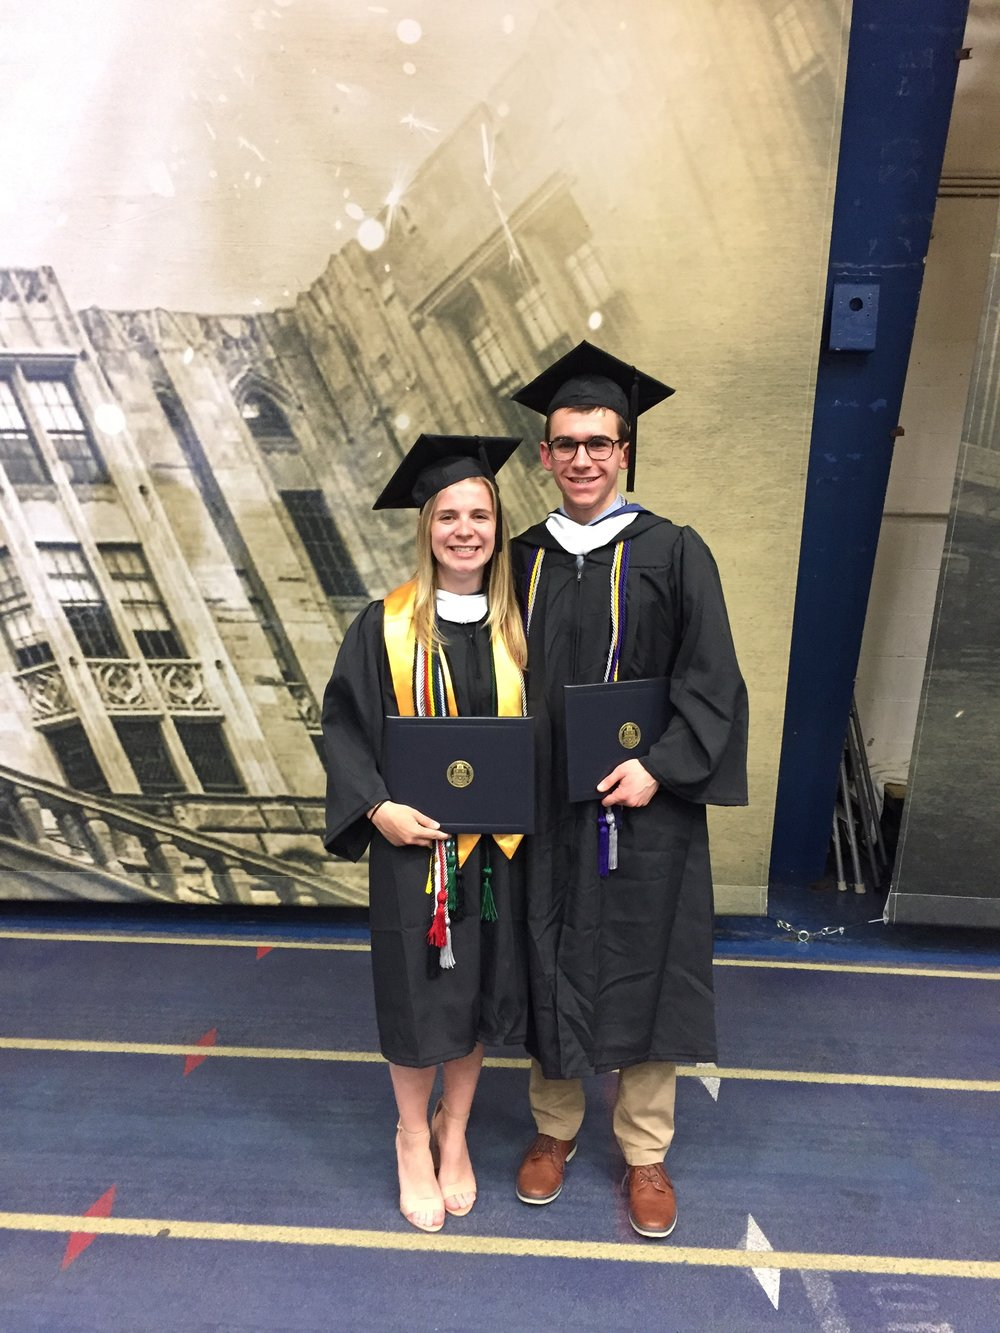 The recent graduates and Carlson lab alumni Monica and Ben